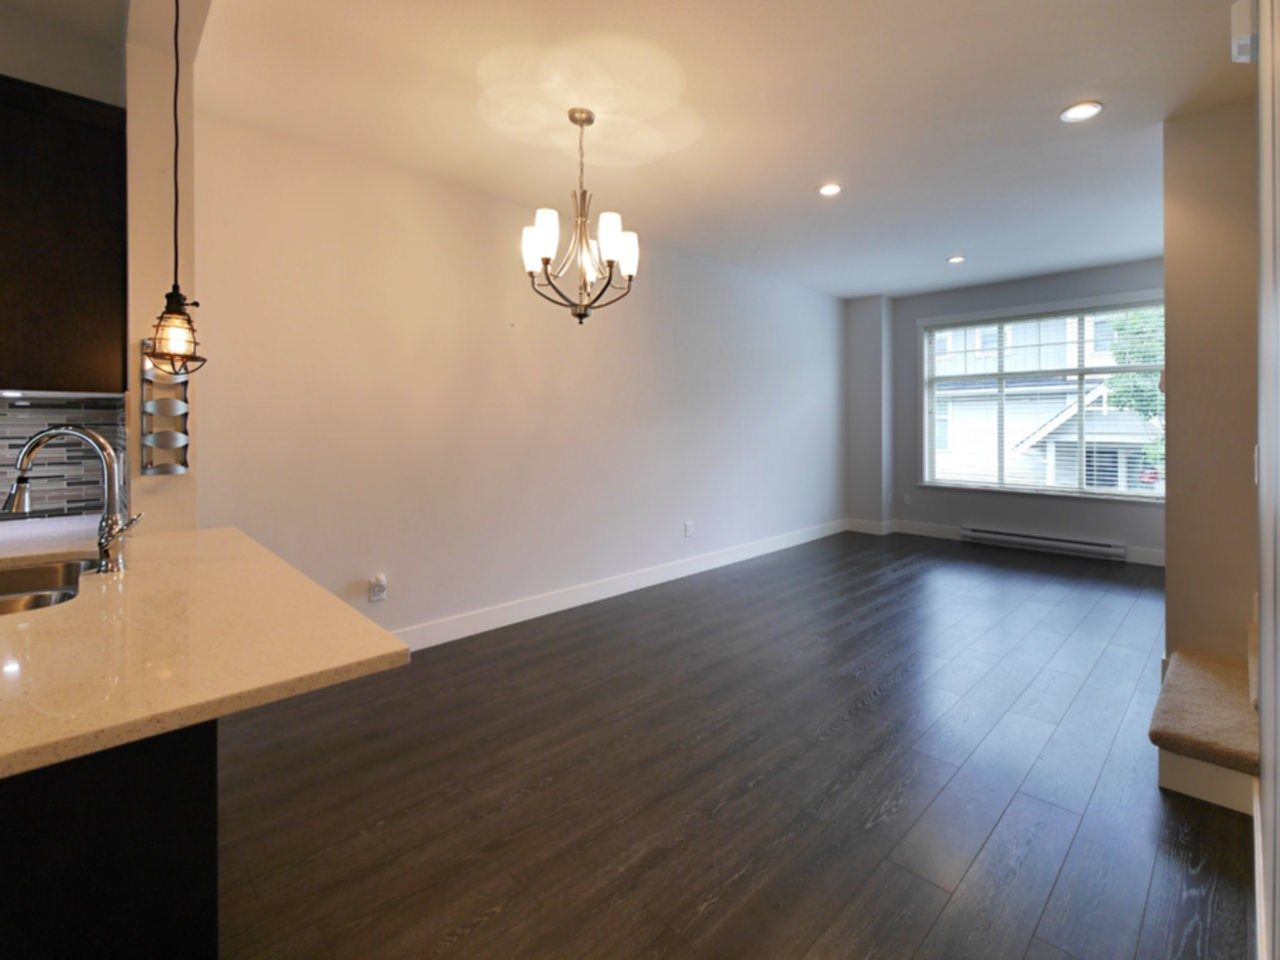 """Photo 4: Photos: 36 19525 73 Avenue in Surrey: Clayton Townhouse for sale in """"Uptown Clayton"""" (Cloverdale)  : MLS®# R2069814"""